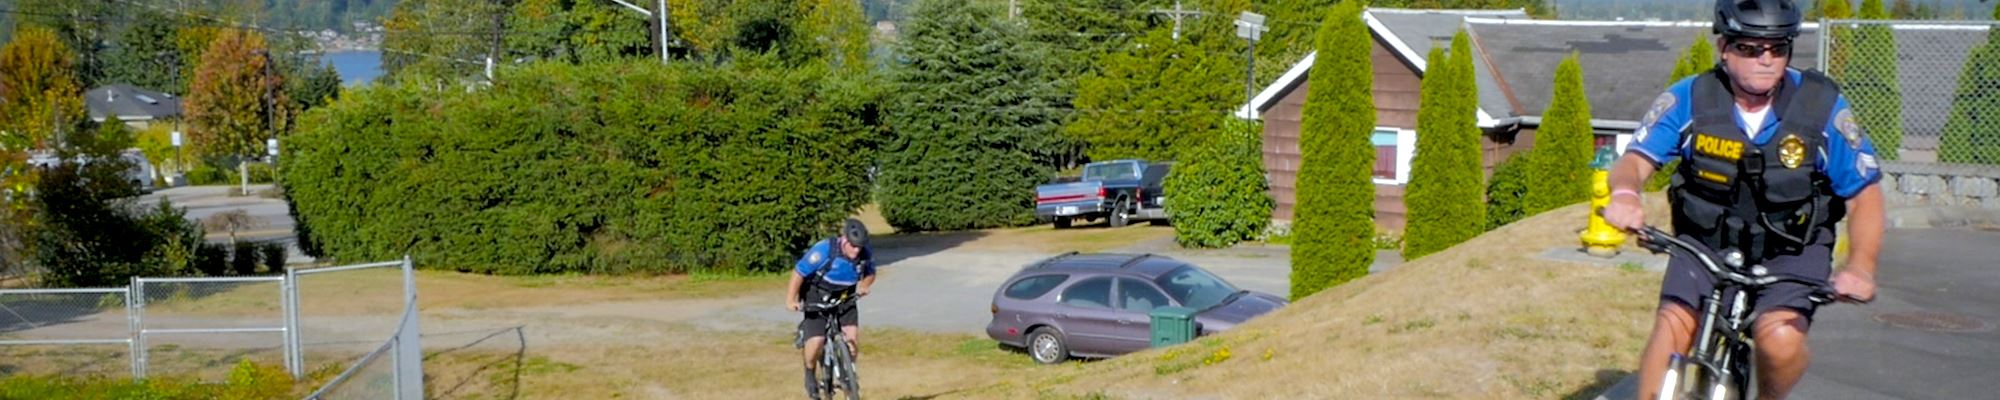 Police | Lake Stevens, WA - Official Website